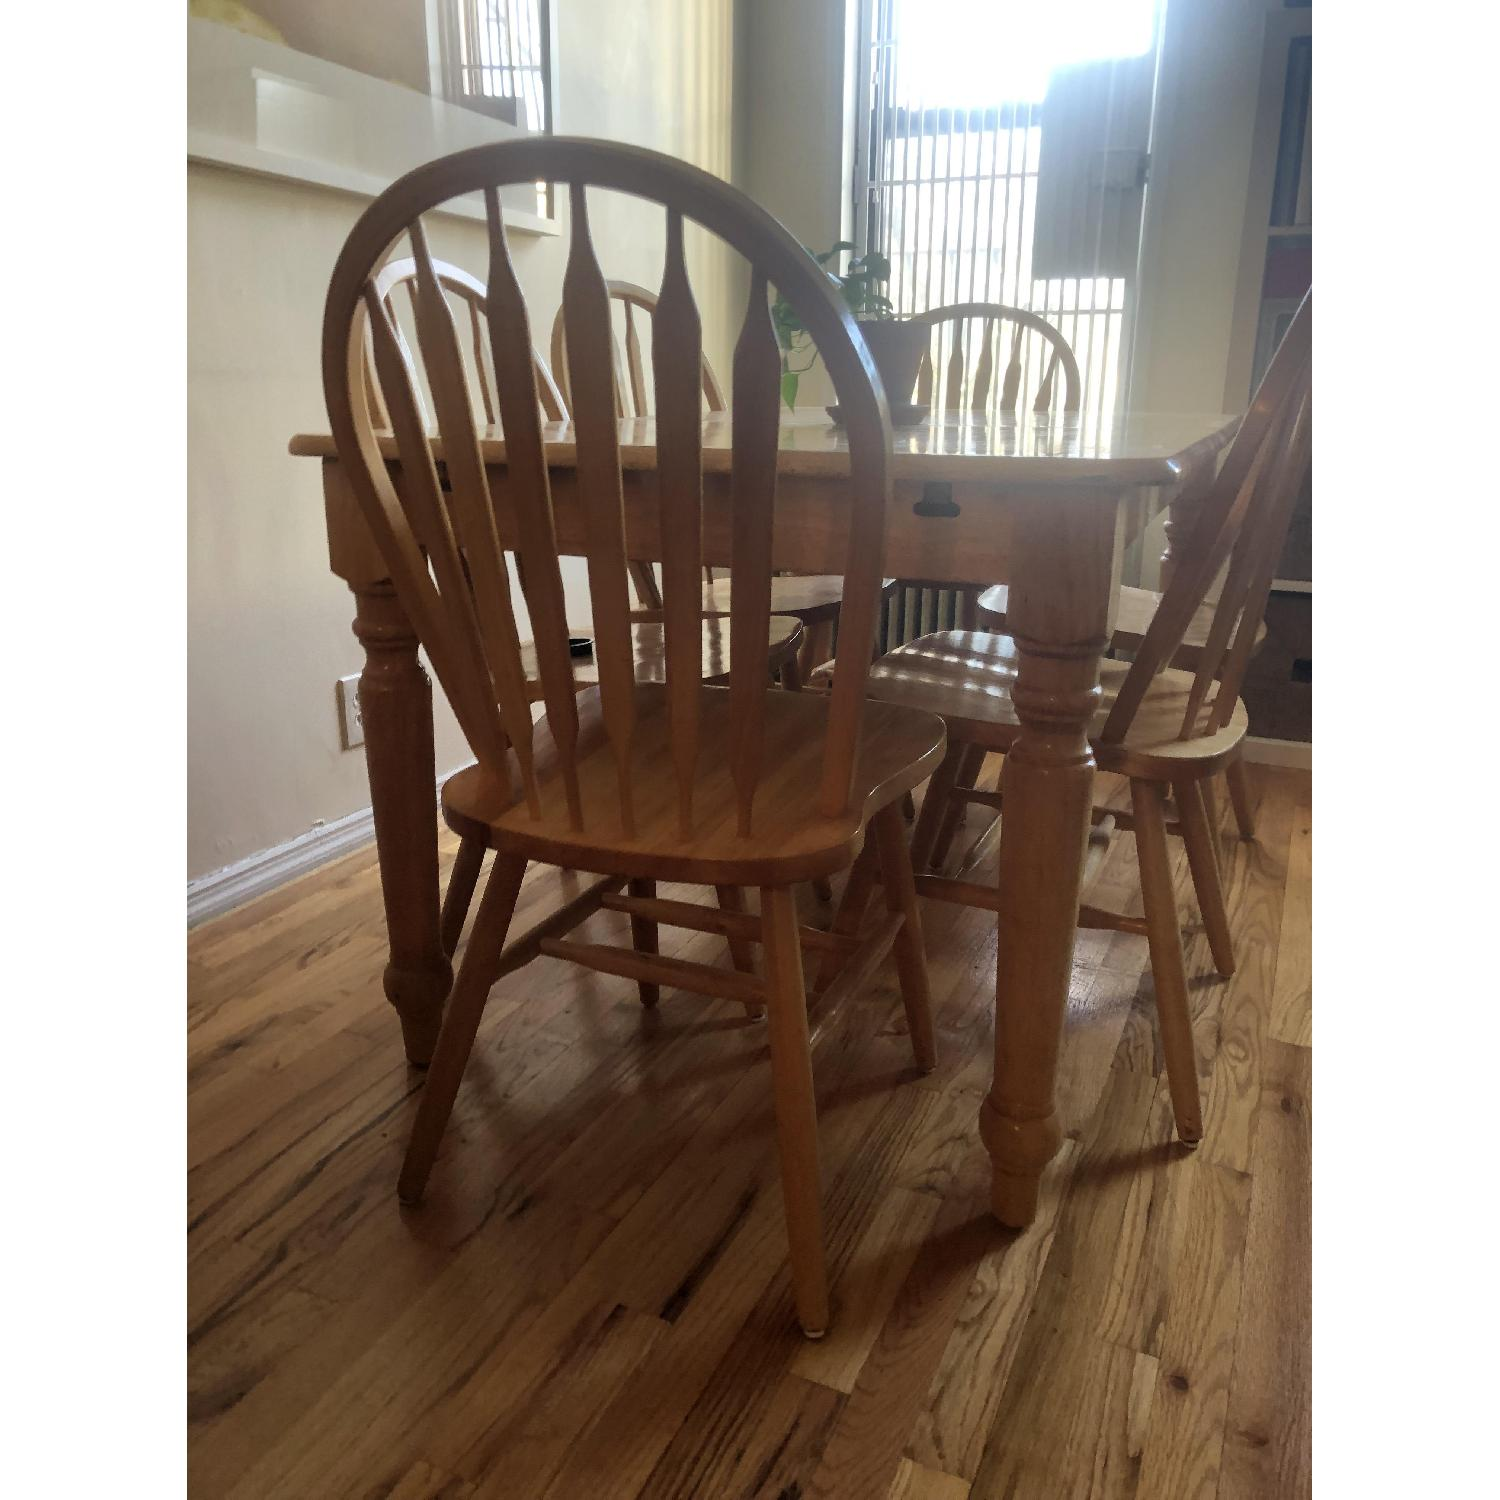 Farmhouse Style Extendable Dining Table w/ 6 Matching Chairs-3